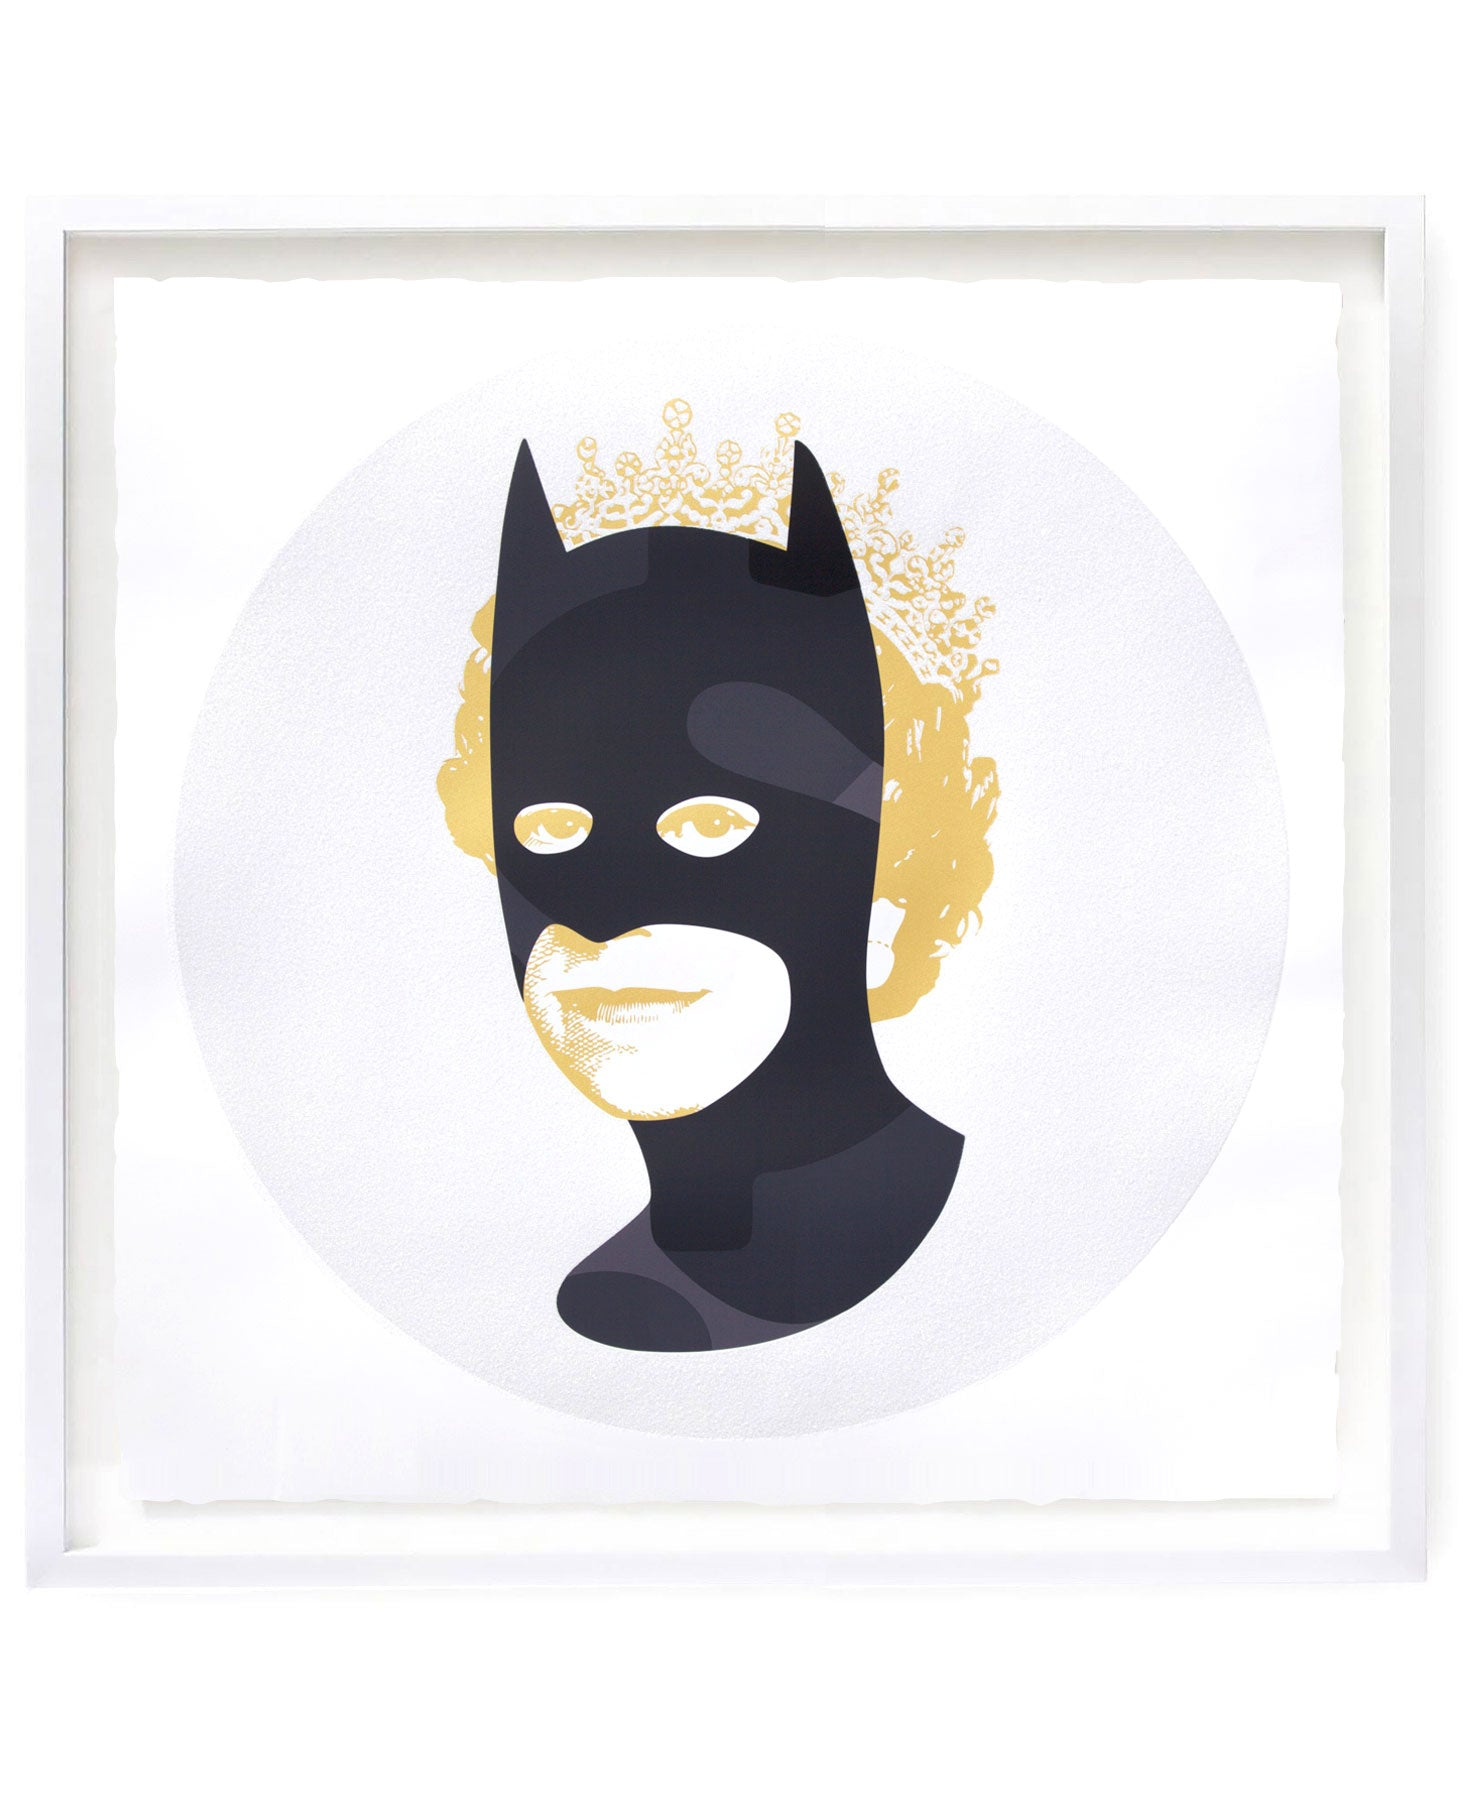 Rich Enough to be Batman by contemporary artist features camo print, gold and diamond dust glitter